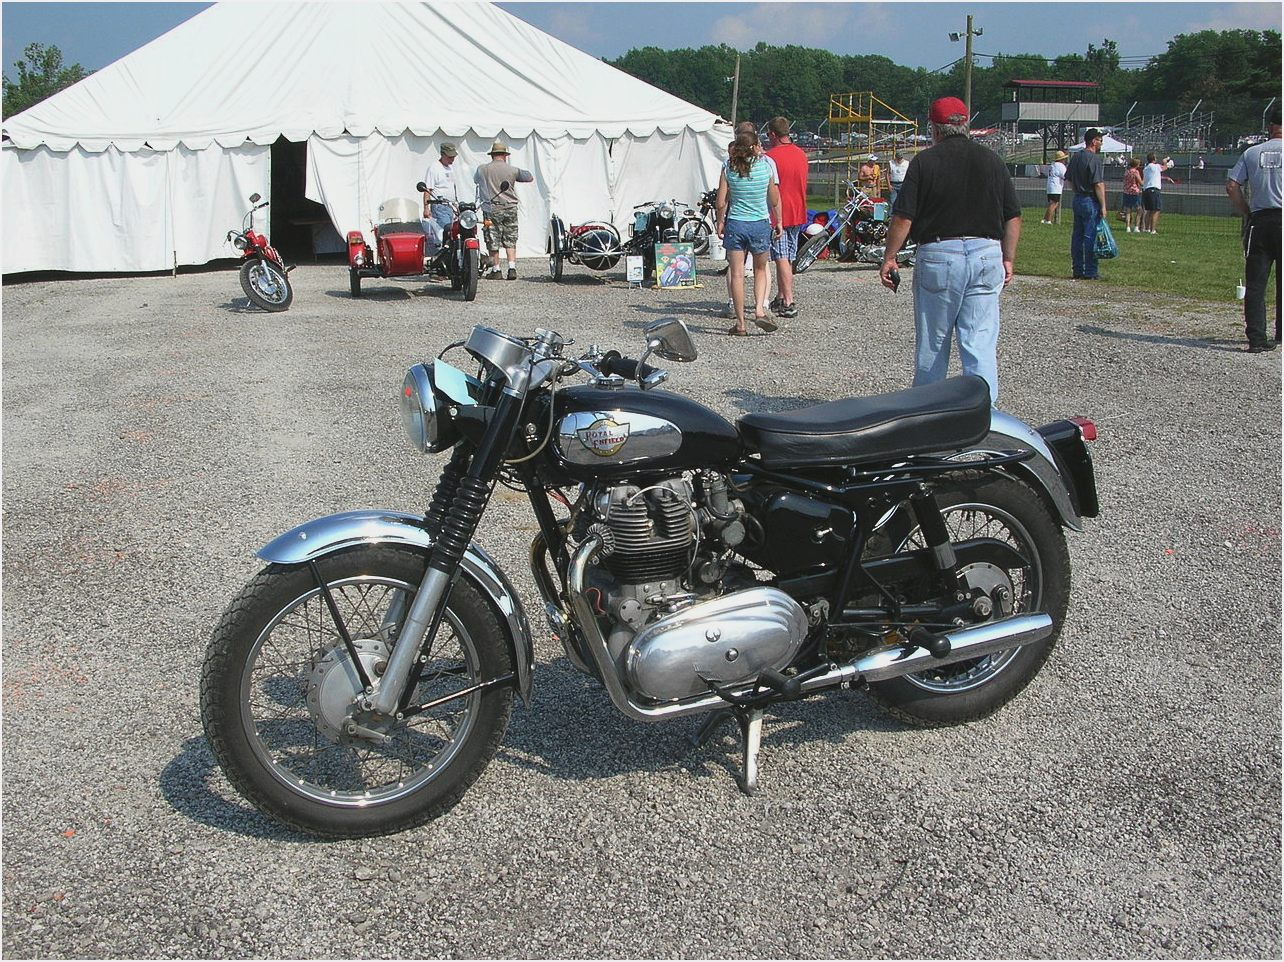 Royal Enfield Bullet 350 Army 2002 images #123584